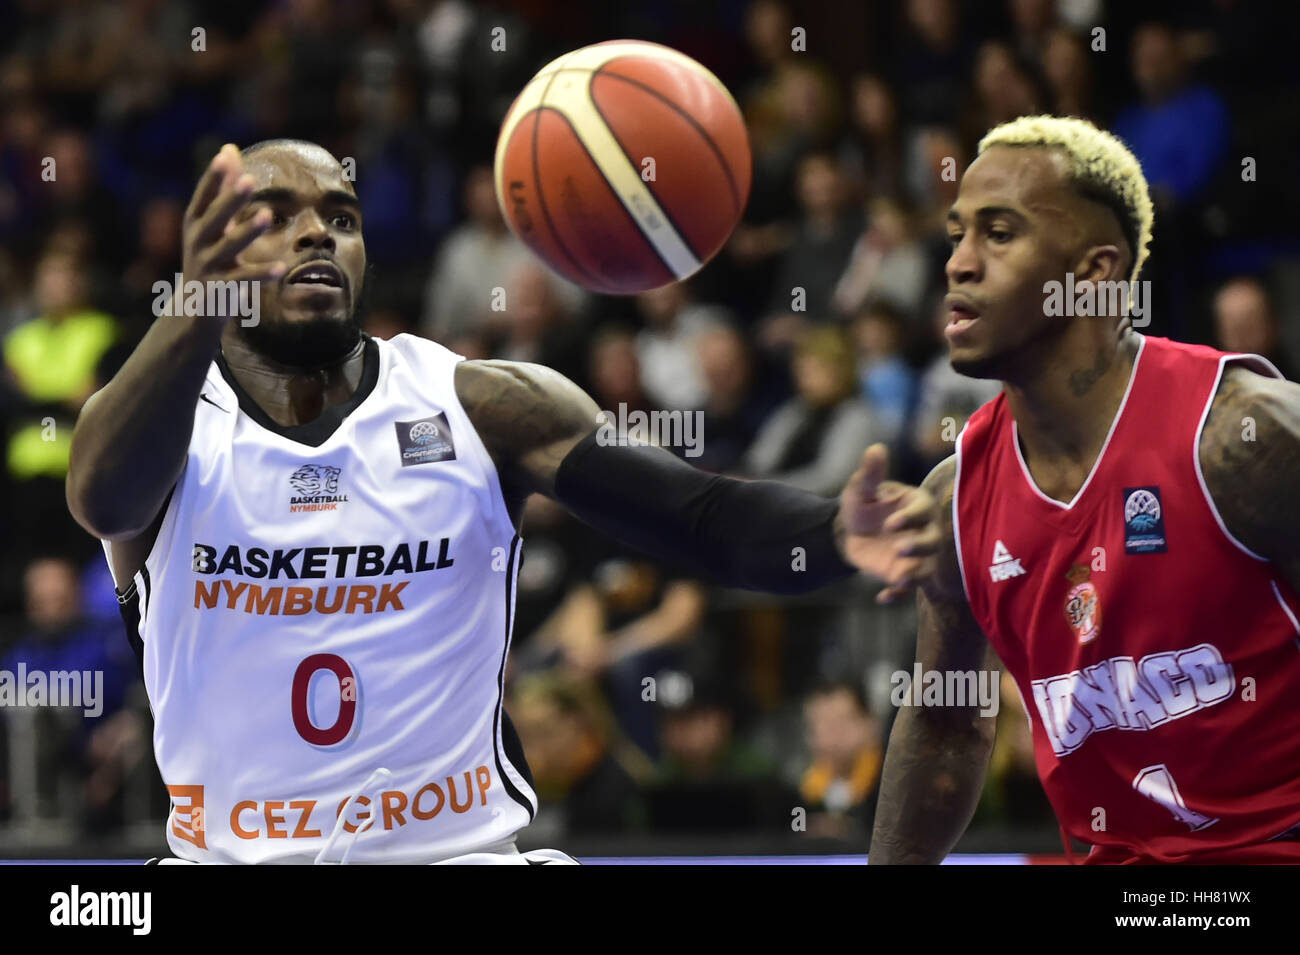 Nymburk, Czech Republic. 17th Jan, 2017. From left BRYON ALLEN of Nymburk and DEE BOST of Monaco in action during - Stock Image